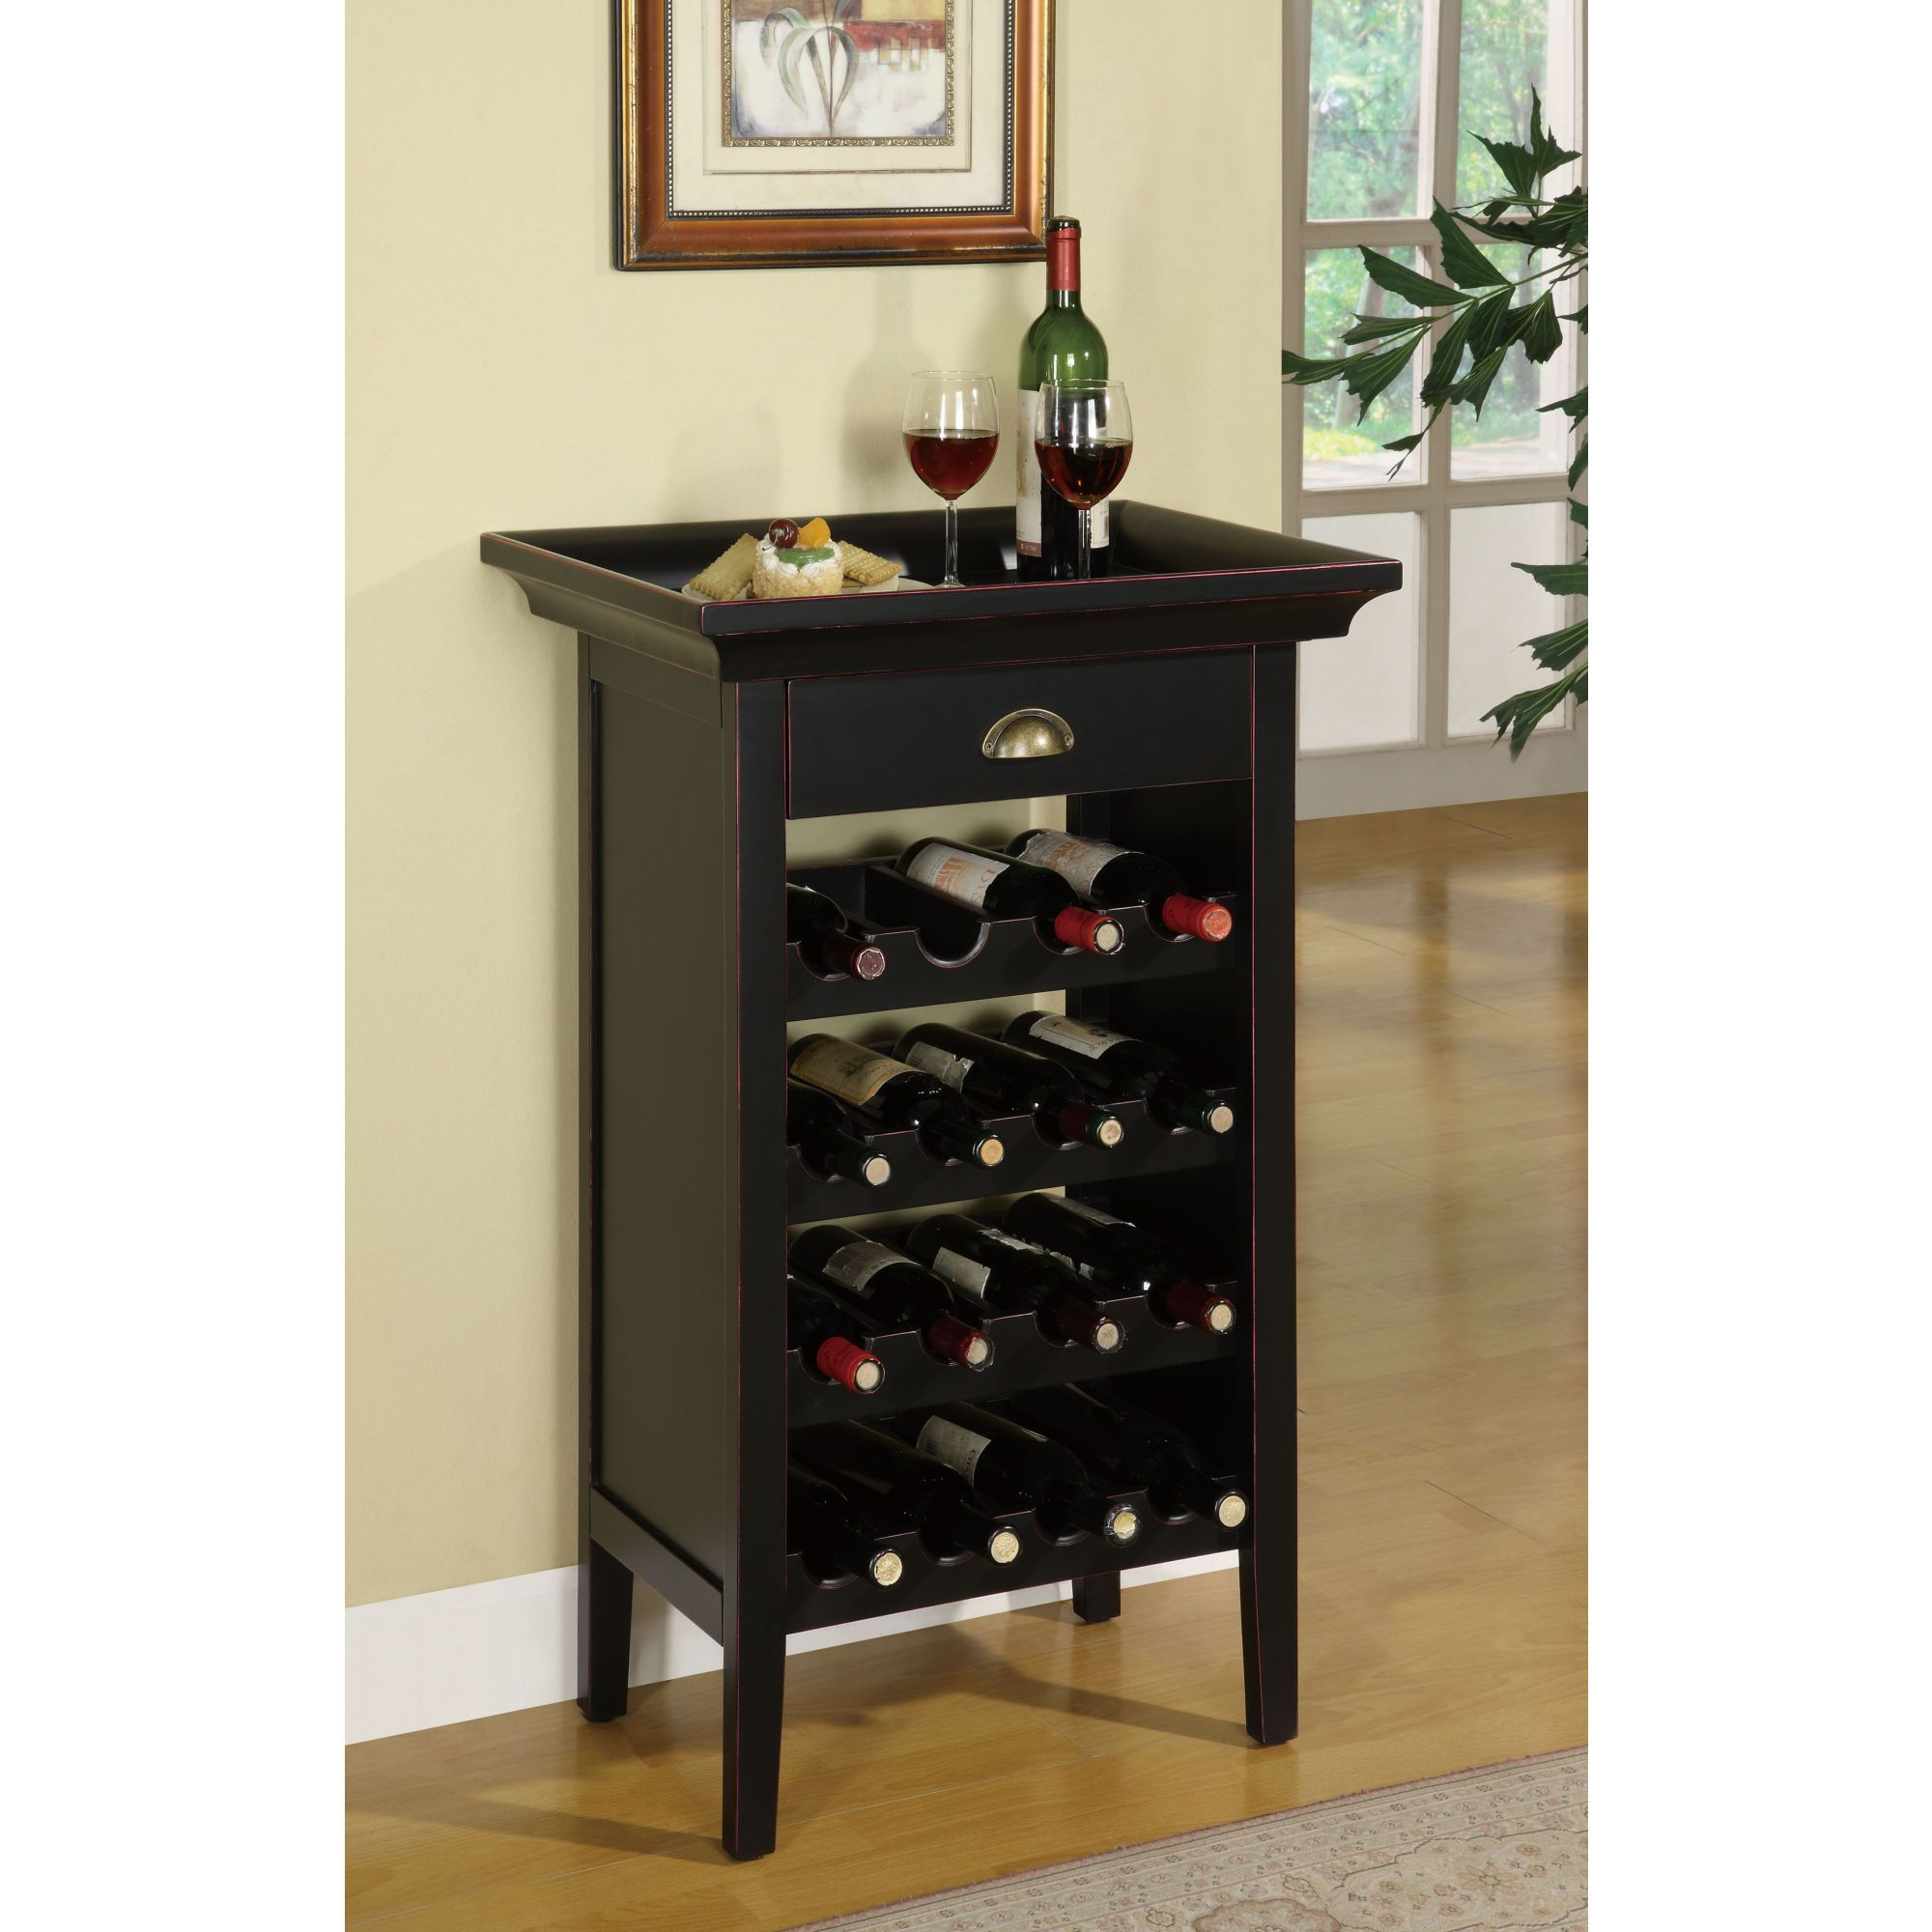 Wine storage table Bottle Cork Wine Rack Table With Removable Tray Compactperfect For Small Spaces Pinterest Wine Rack Table With Removable Tray Compactperfect For Small